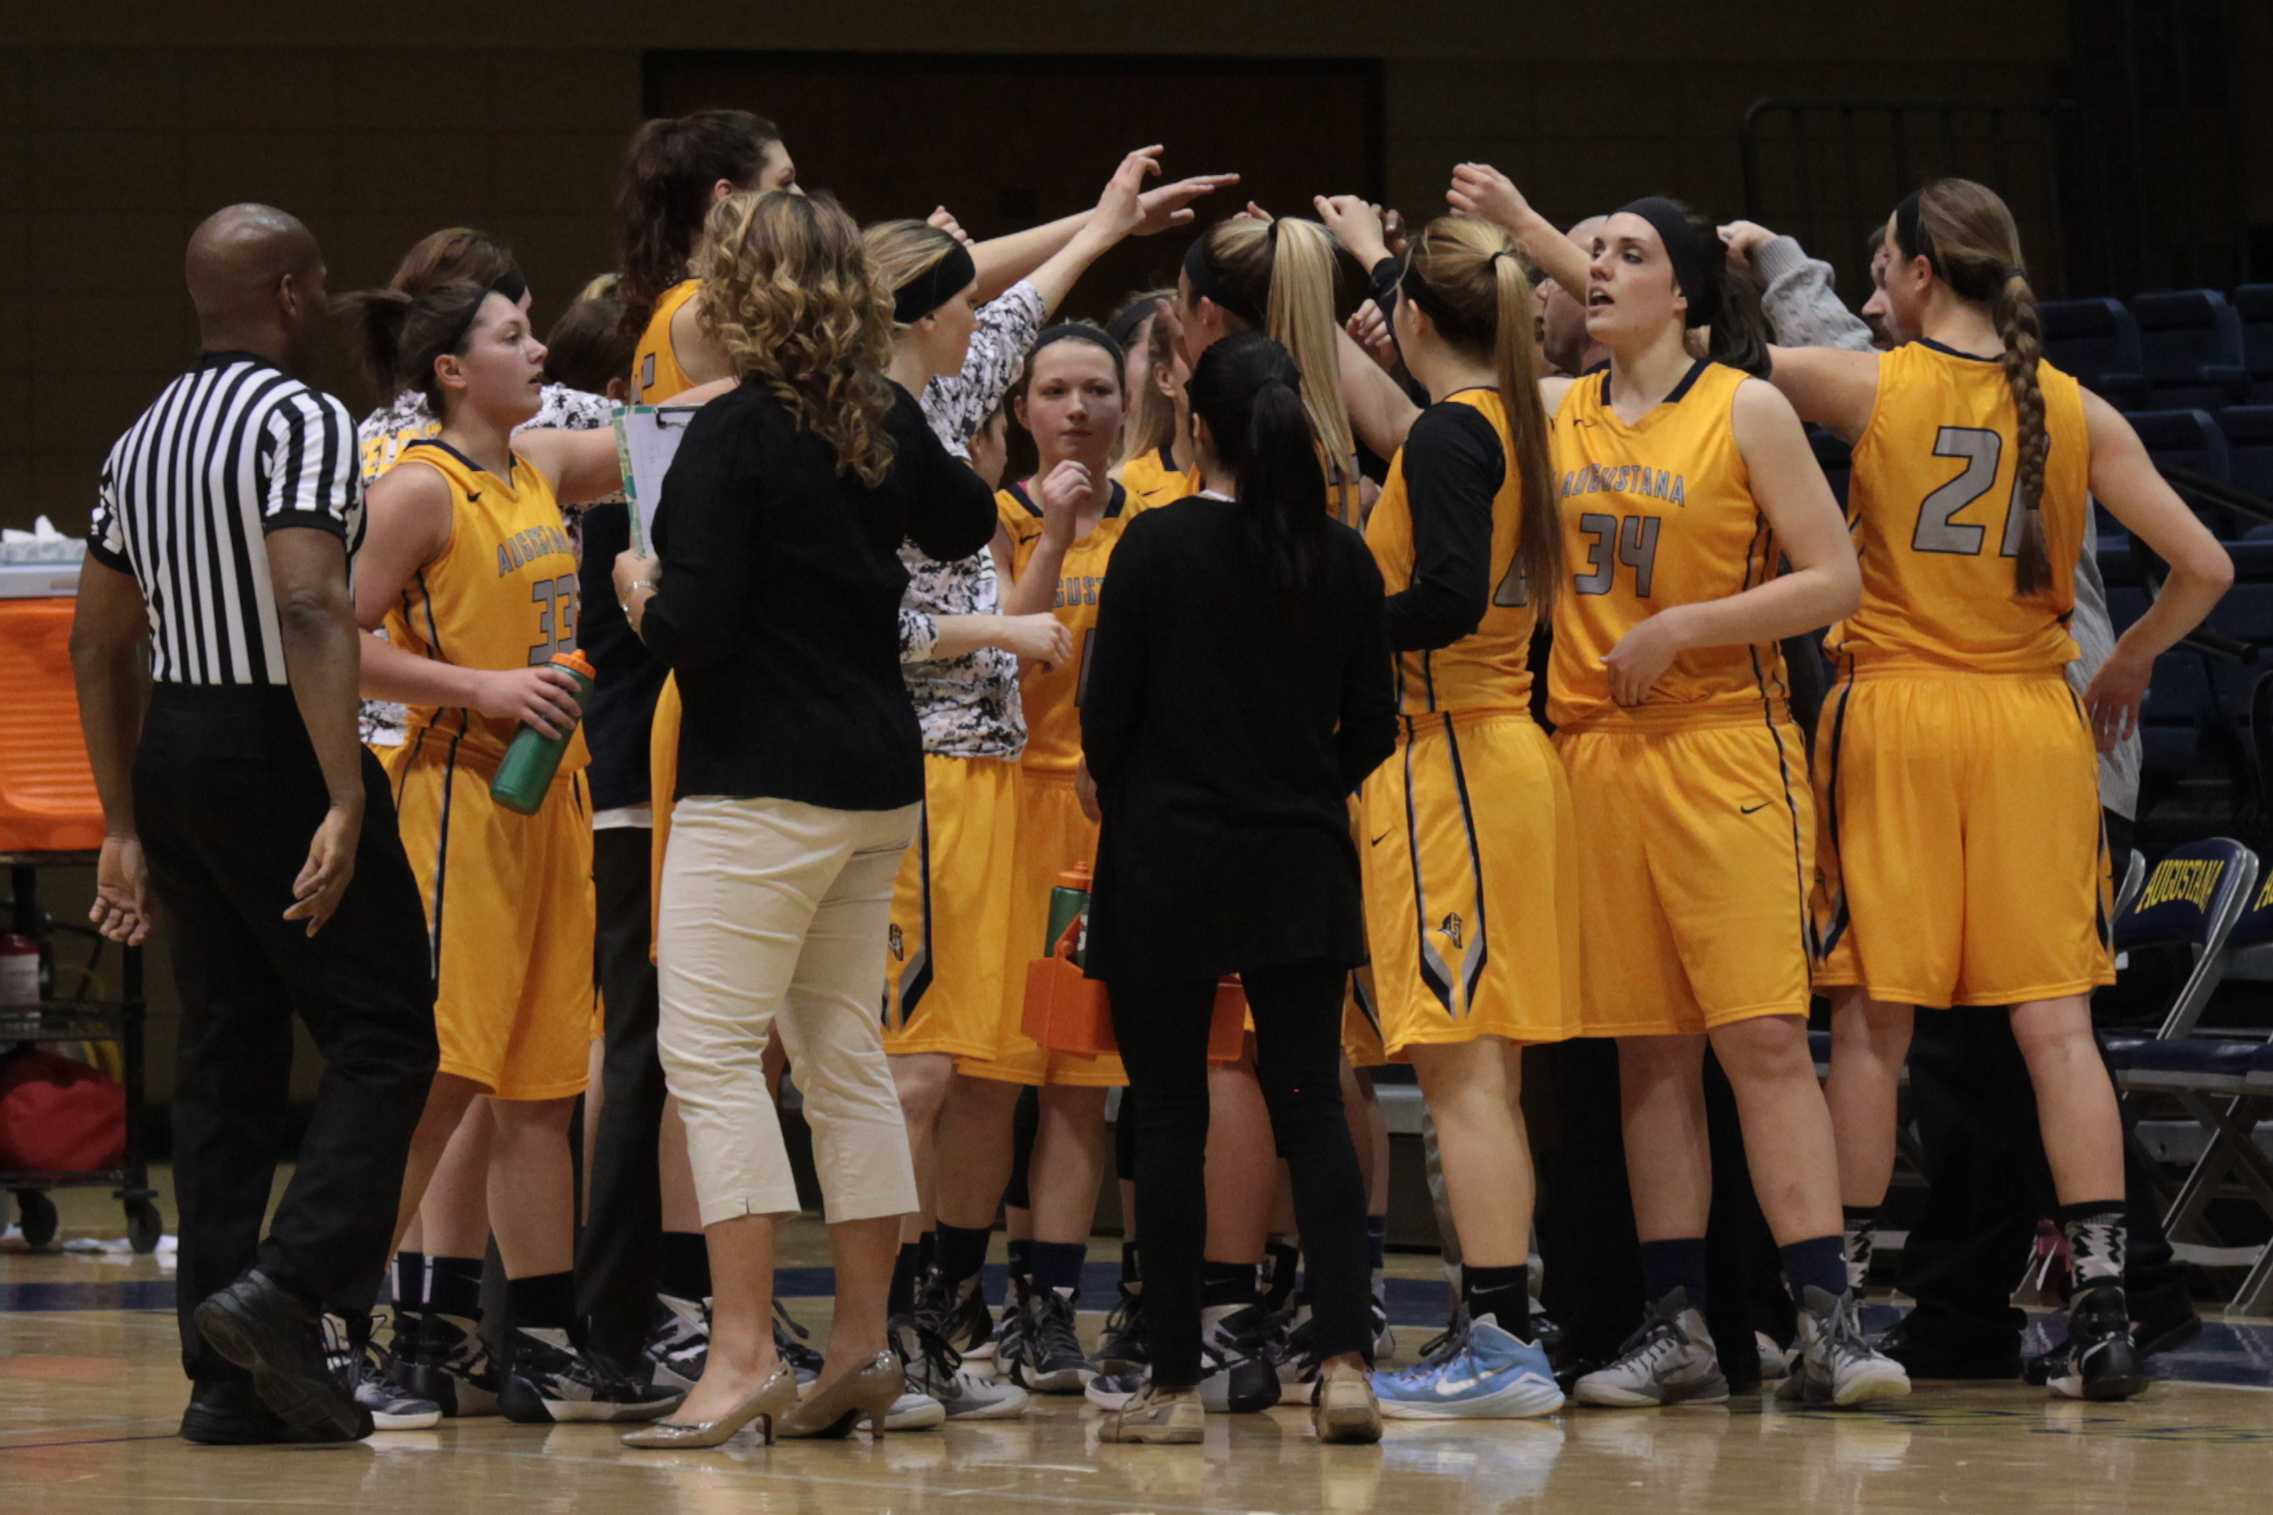 The Augustana women's basketball team huddles up after the first quarter of their game against Illinois Weslyan that took place on Wednesday night in the Carver Center. Photo by LuAnna Gerdemann.